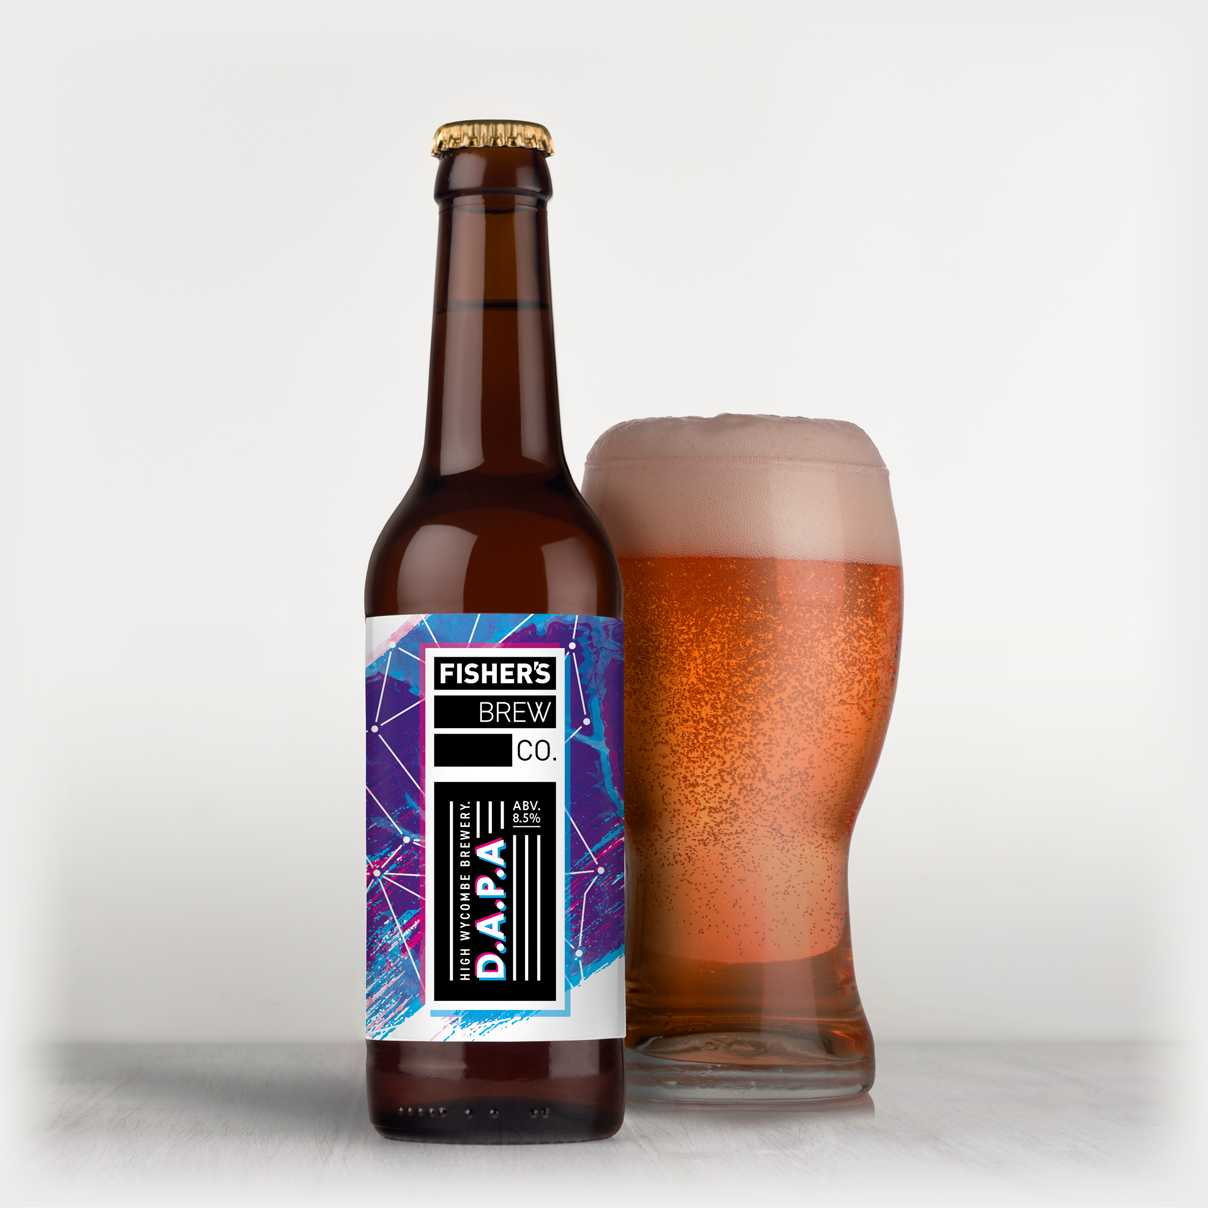 Fisher's branded Double APA bottle and glass of beer